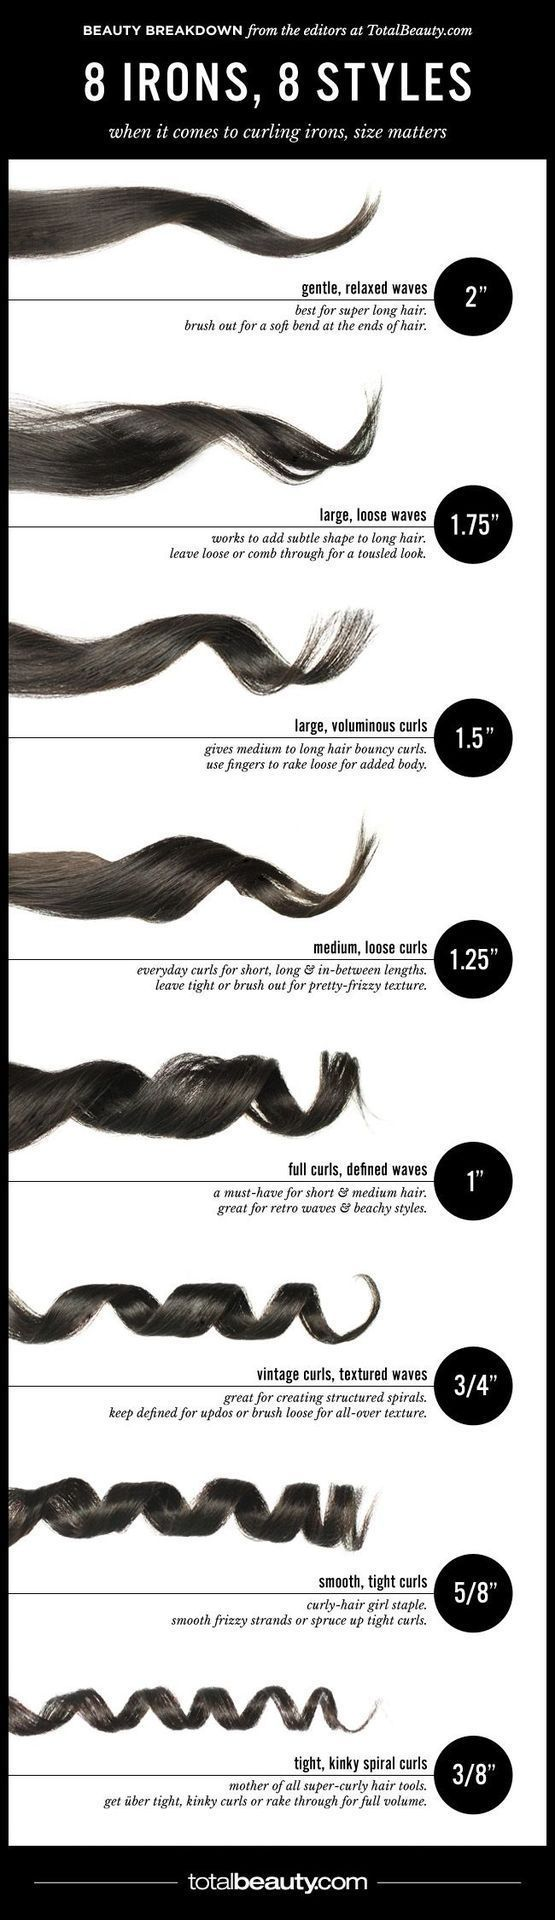 """8 Curling Iron Reference.....I like to curl my hair with a 1"""" curling iron even though I have pretty long hair and it's ideal for medium hair. Would like to try thicker irons. Worth a try. I love curls."""